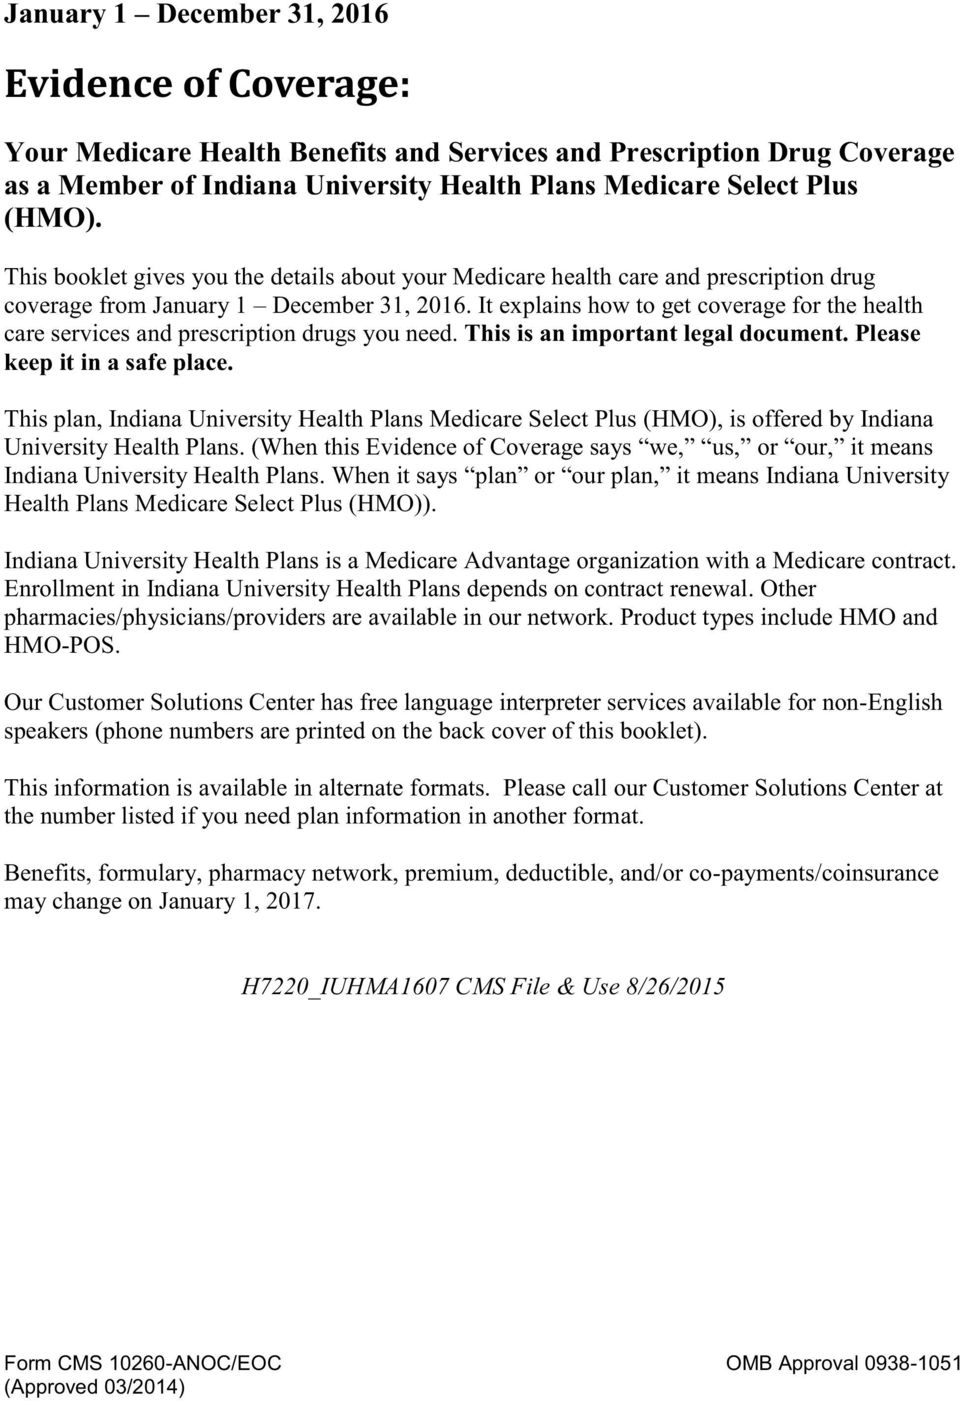 It explains how to get coverage for the health care services and prescription drugs you need. This is an important legal document. Please keep it in a safe place.